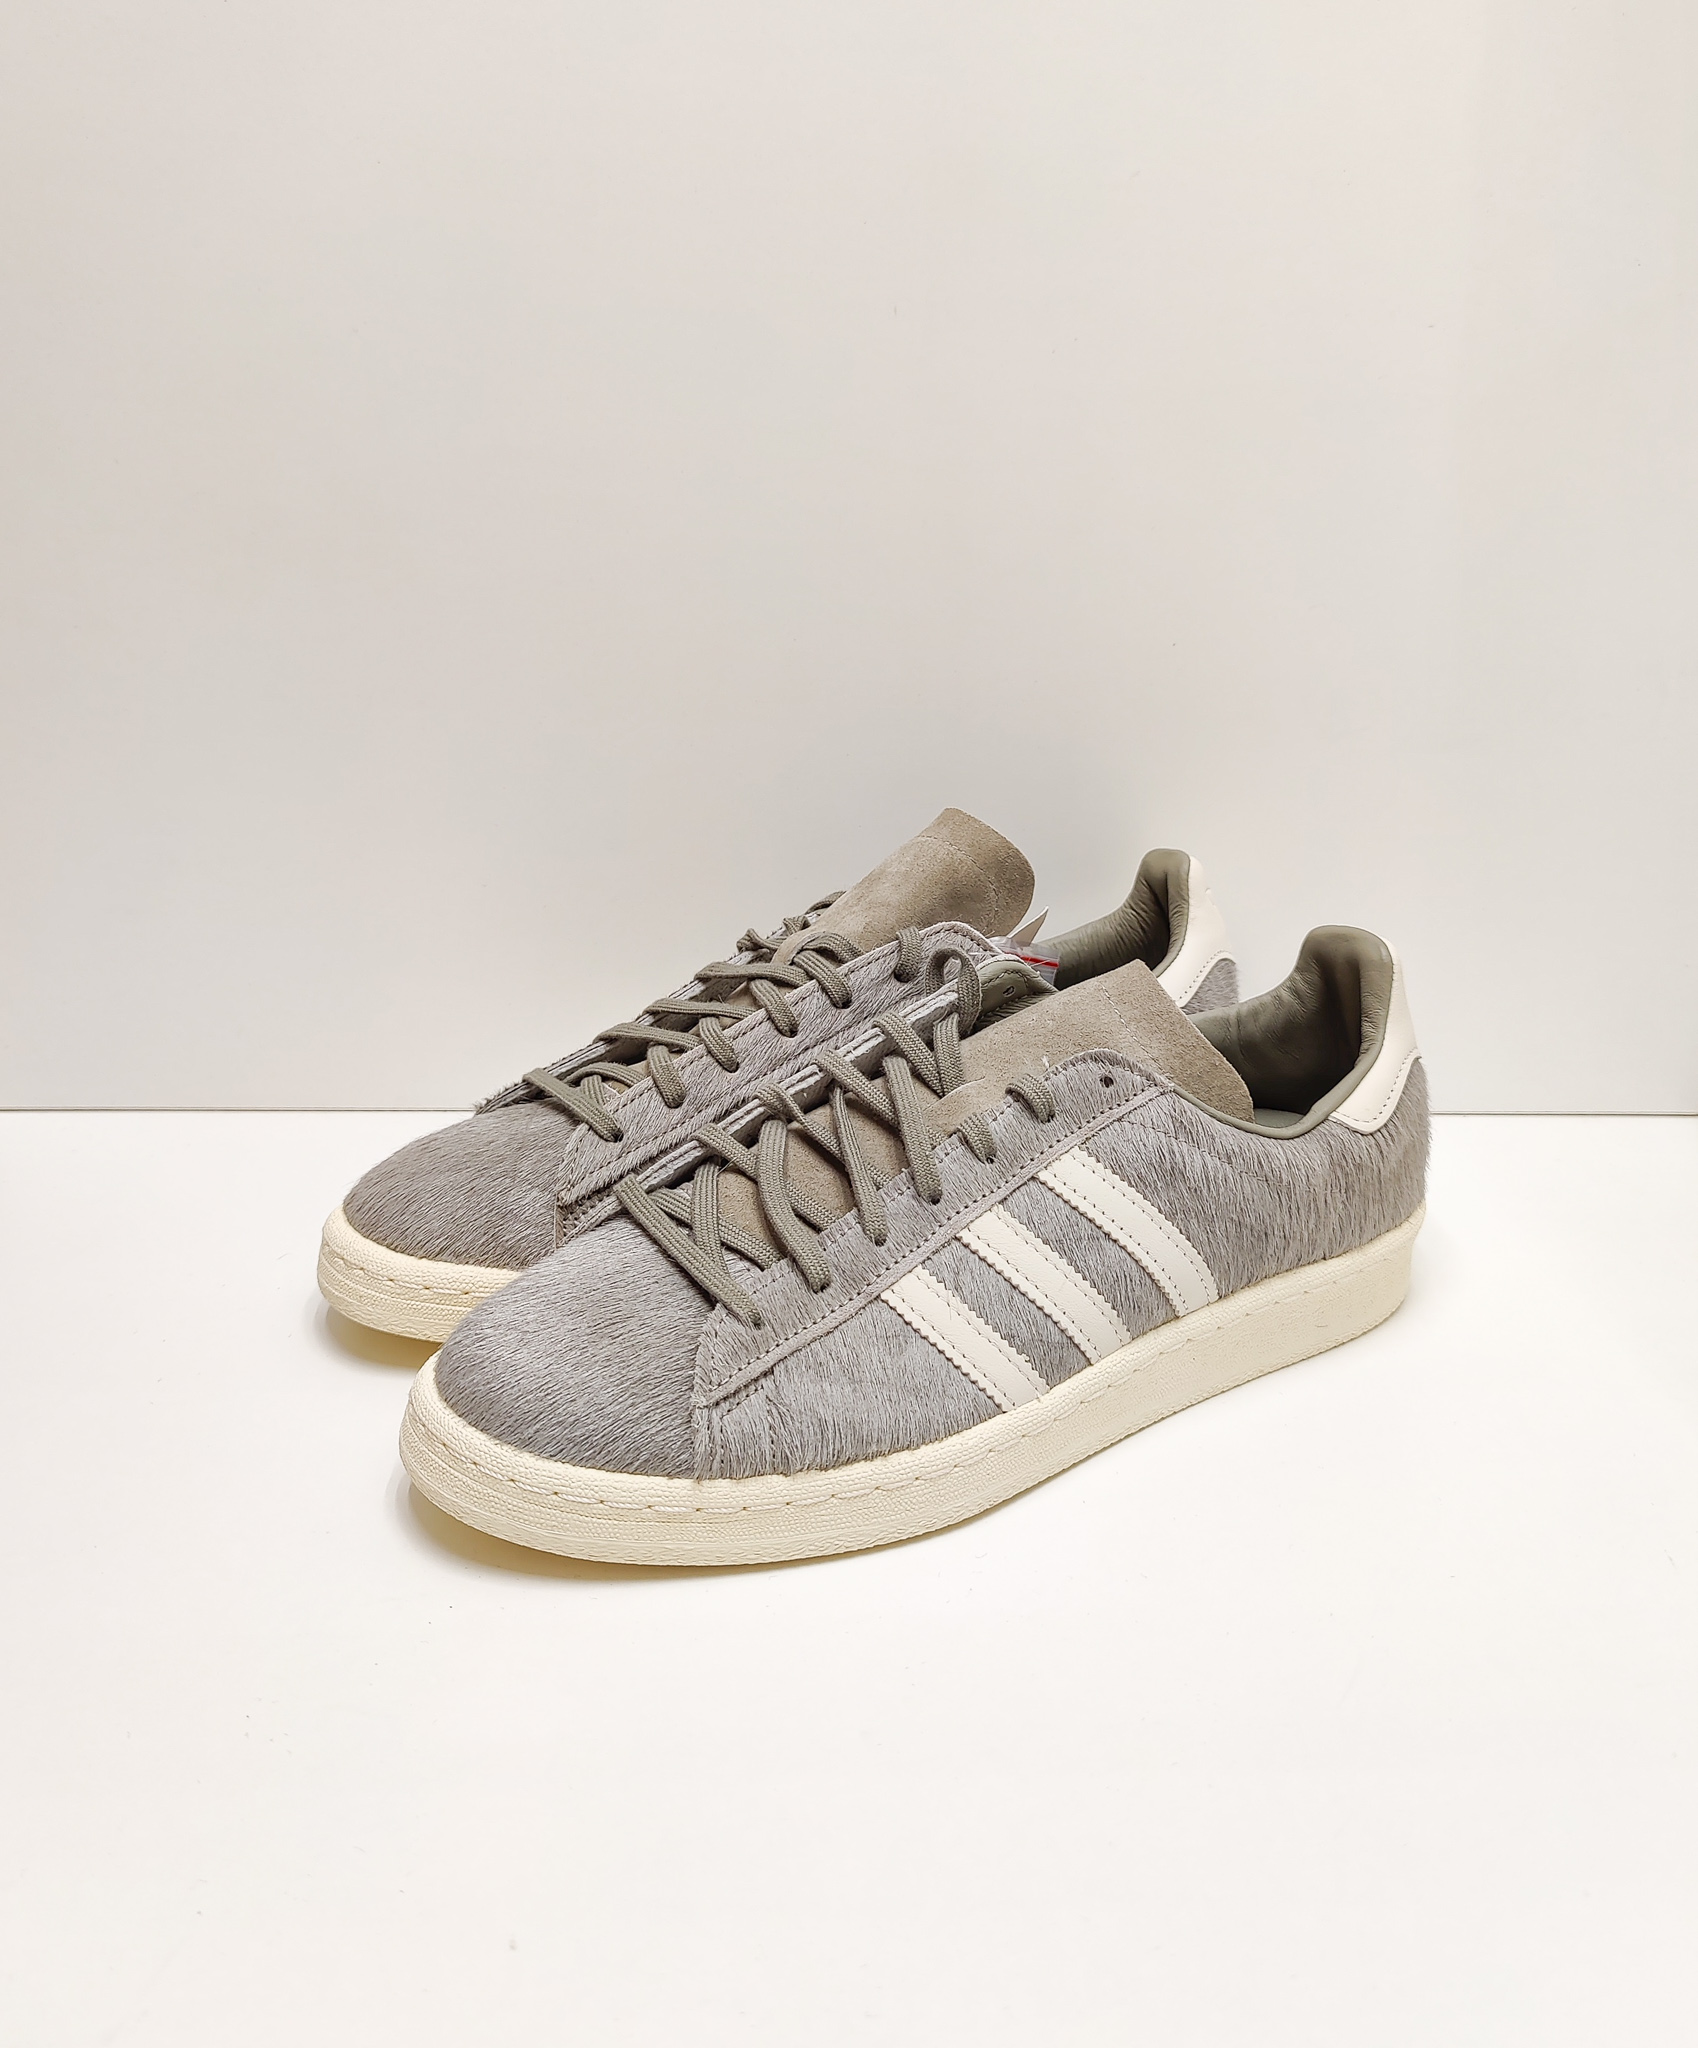 Adidas Campus 80s Pony-Hair Grey